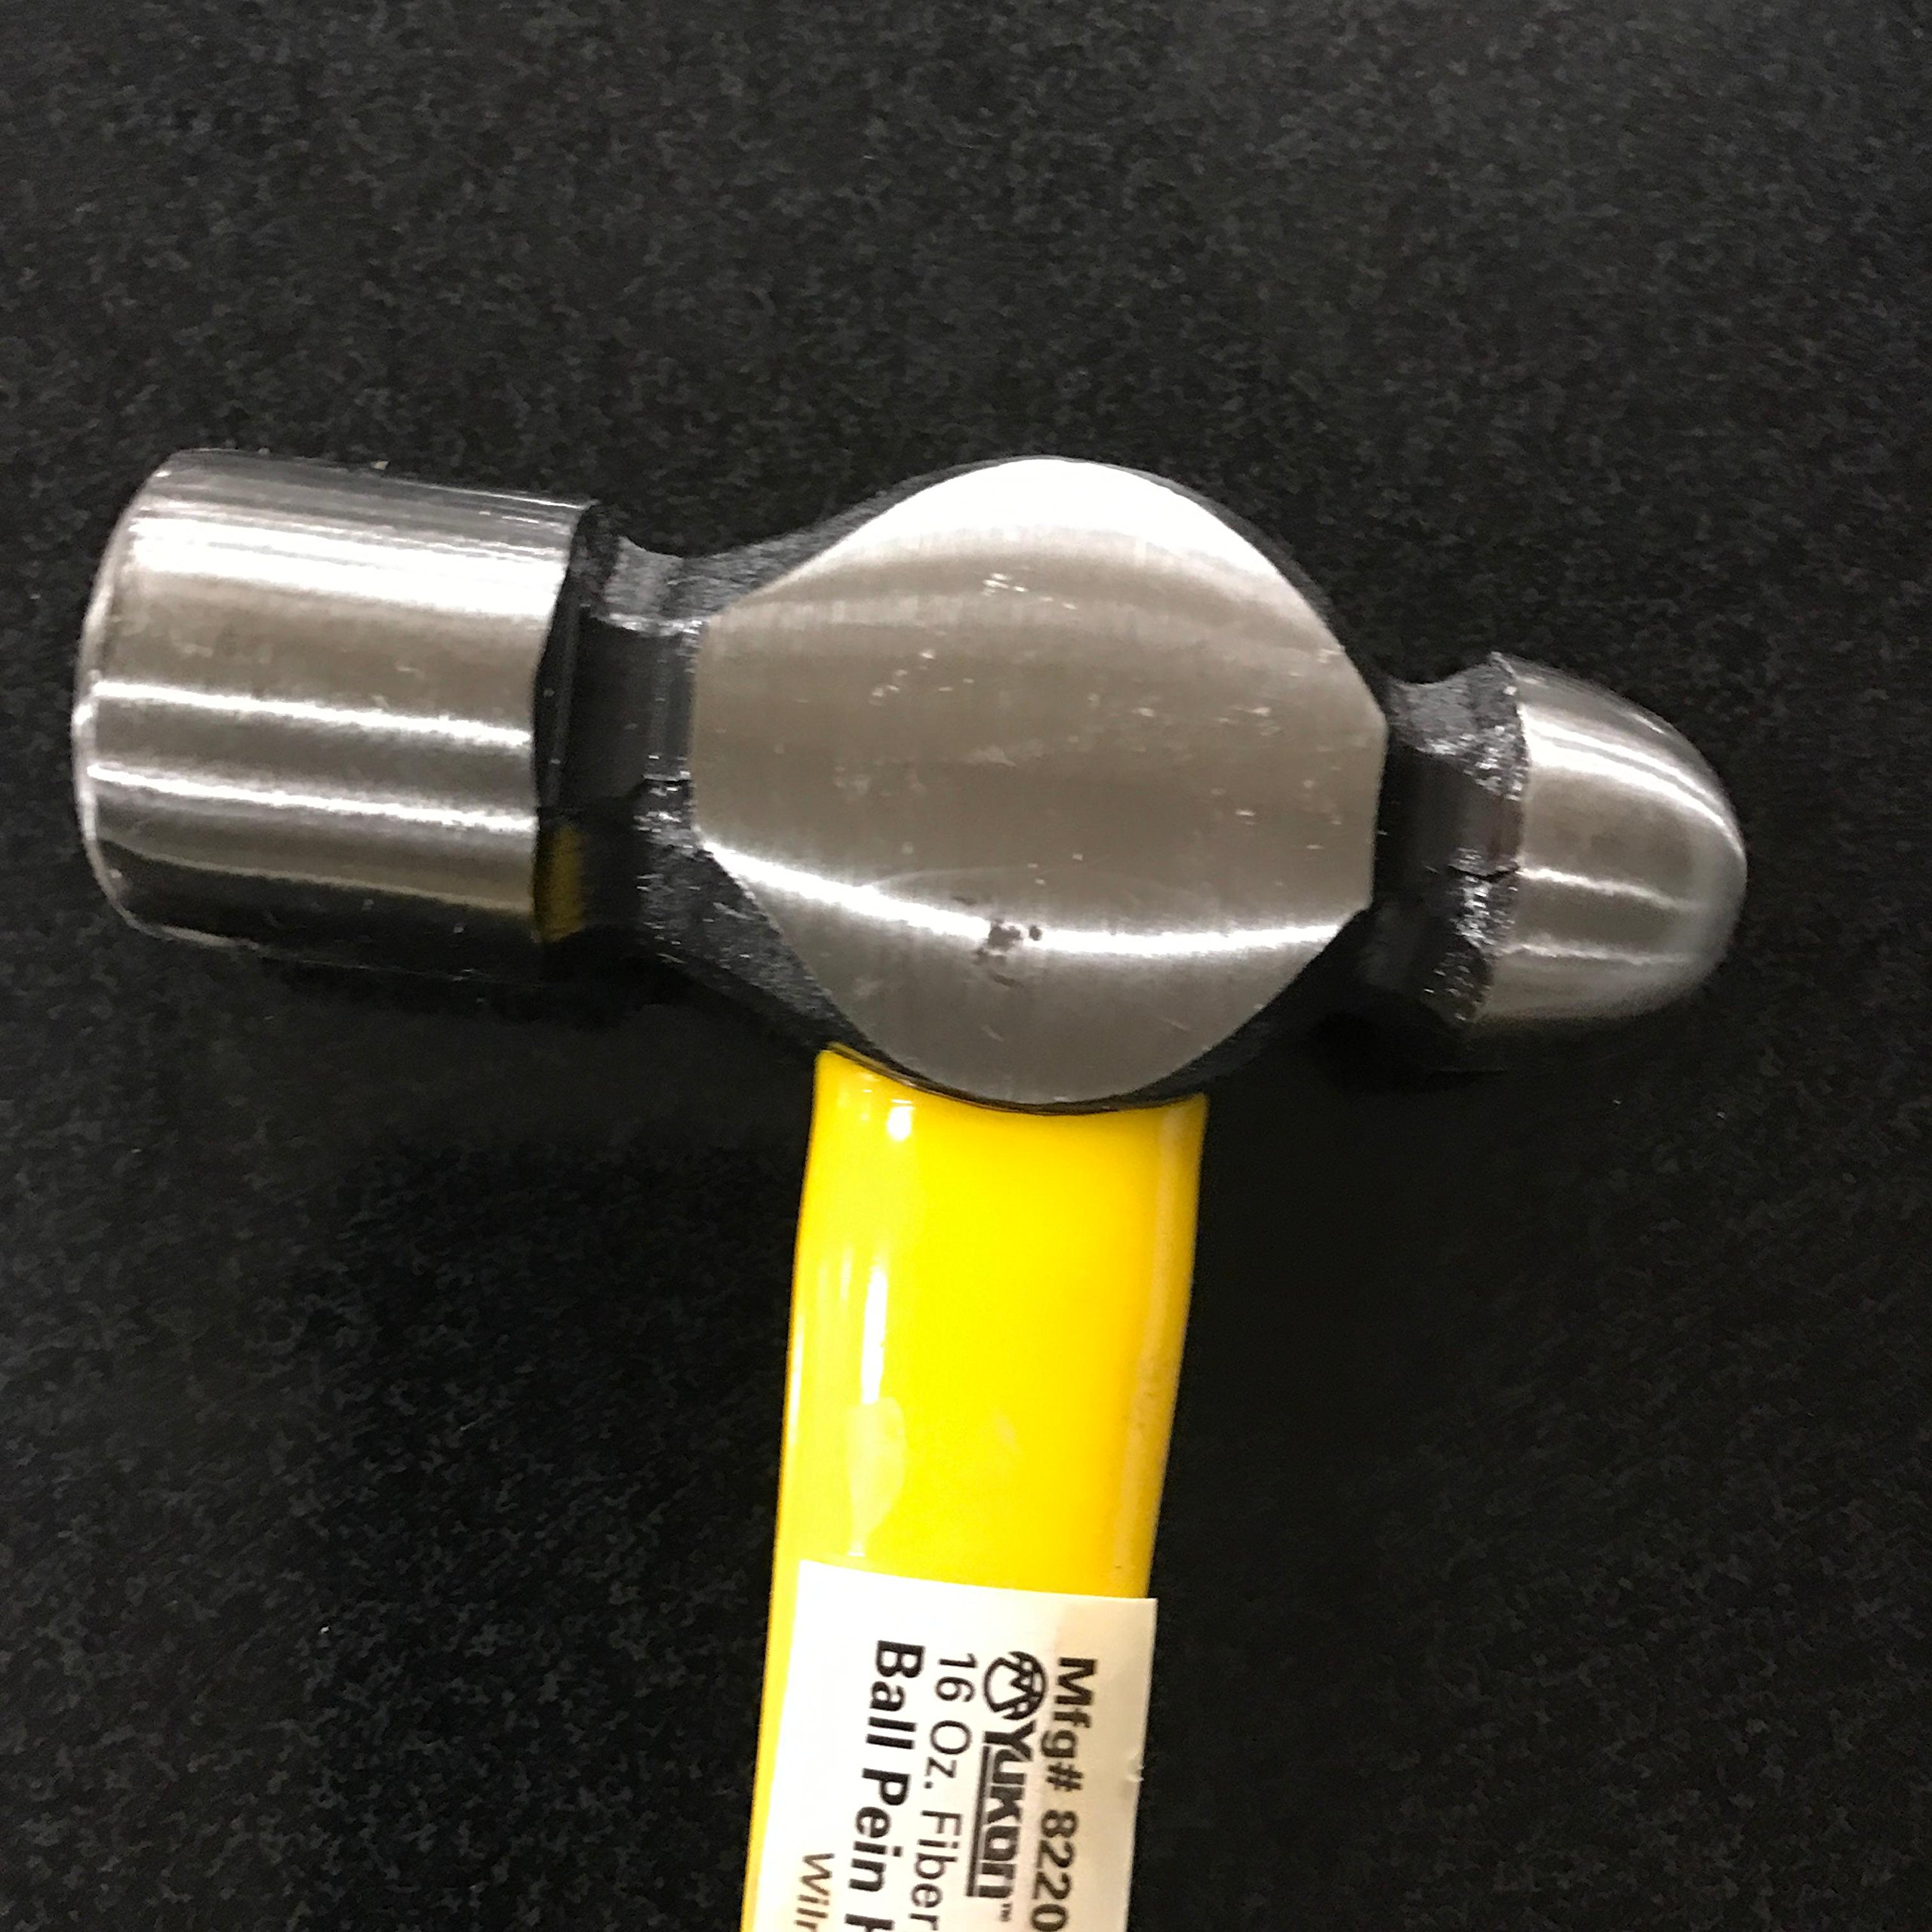 NATIONAL BRAND ALTERNATIVE GIDDS2-822003 Ball Pien Hammer - 822003,